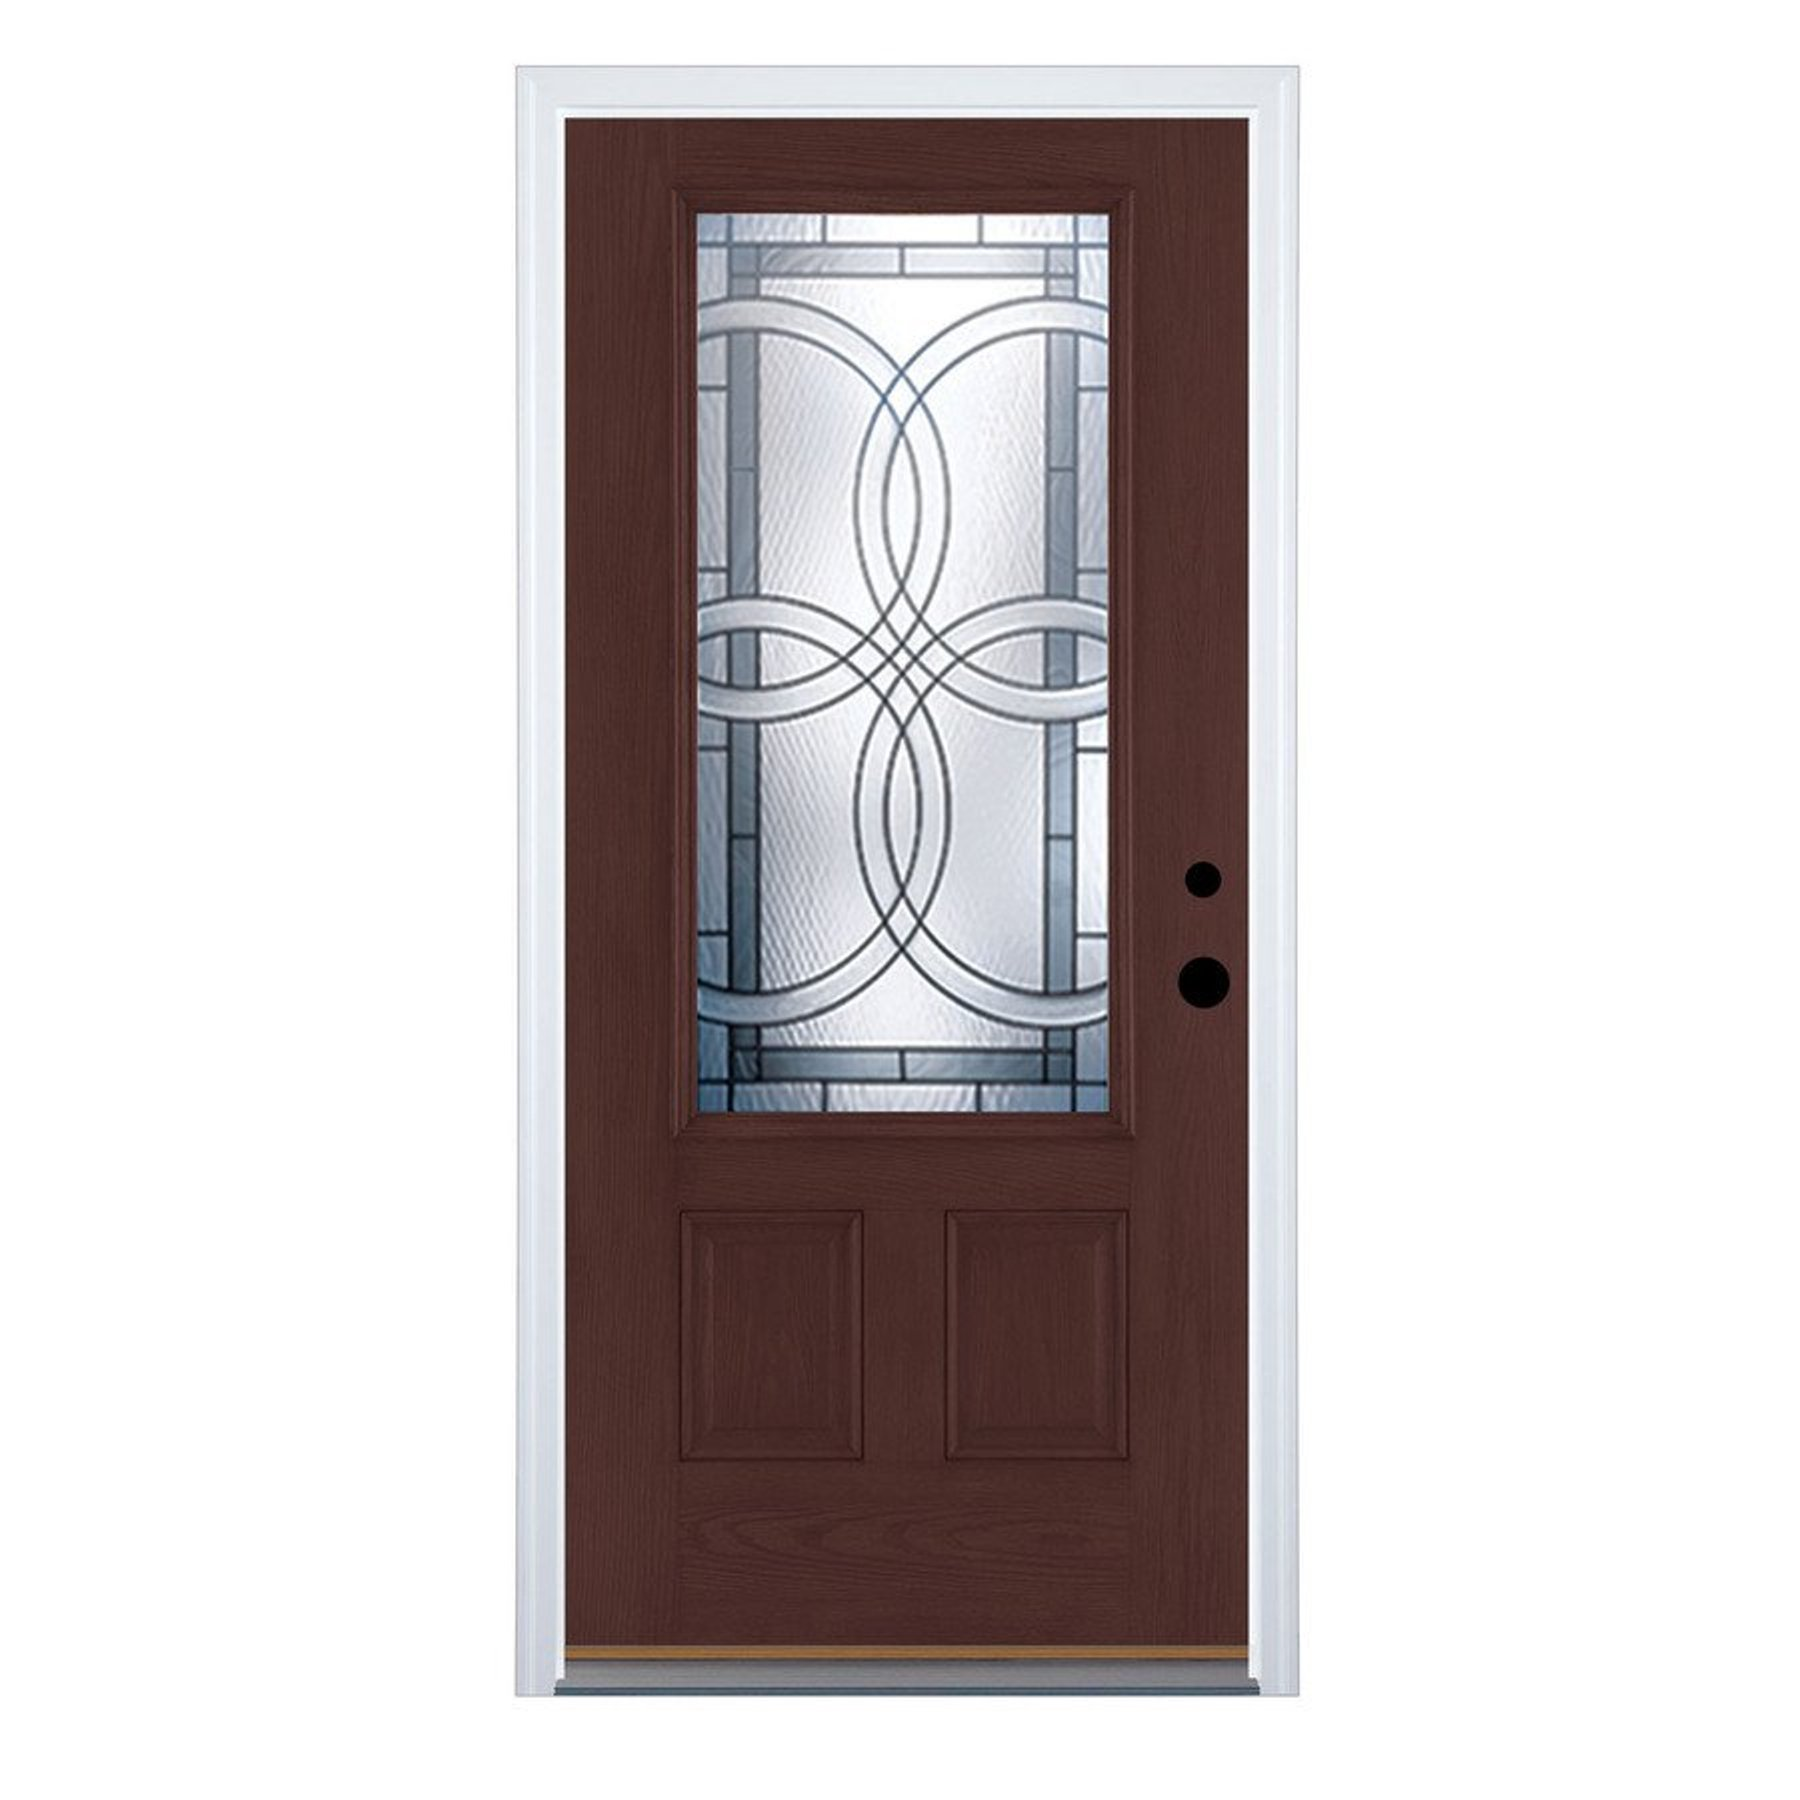 Lowes 6 Panel Door | Door Stopper Lowes | Doors at Lowes